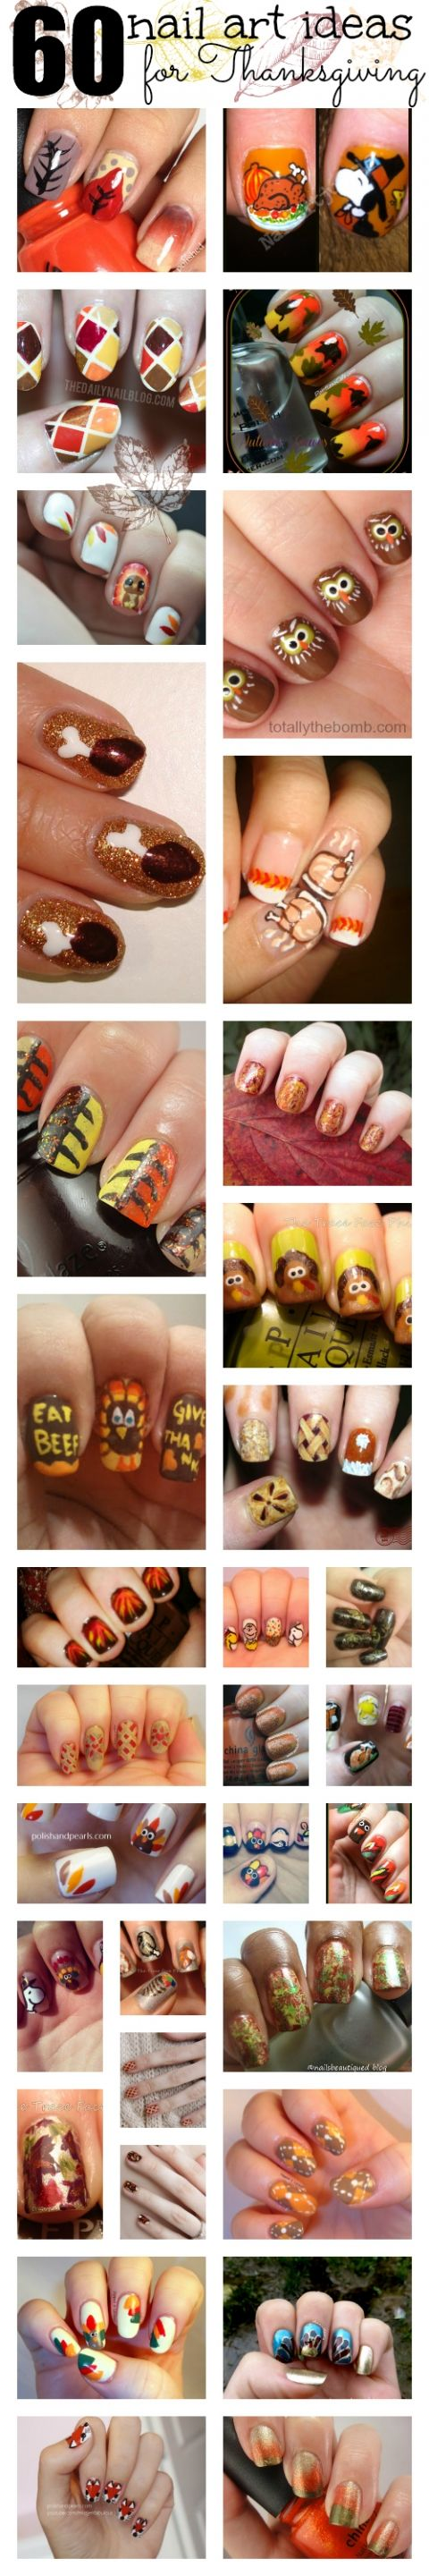 60 Thanksgiving Nail Art Ideas Round Up From Totally The Bomb.com